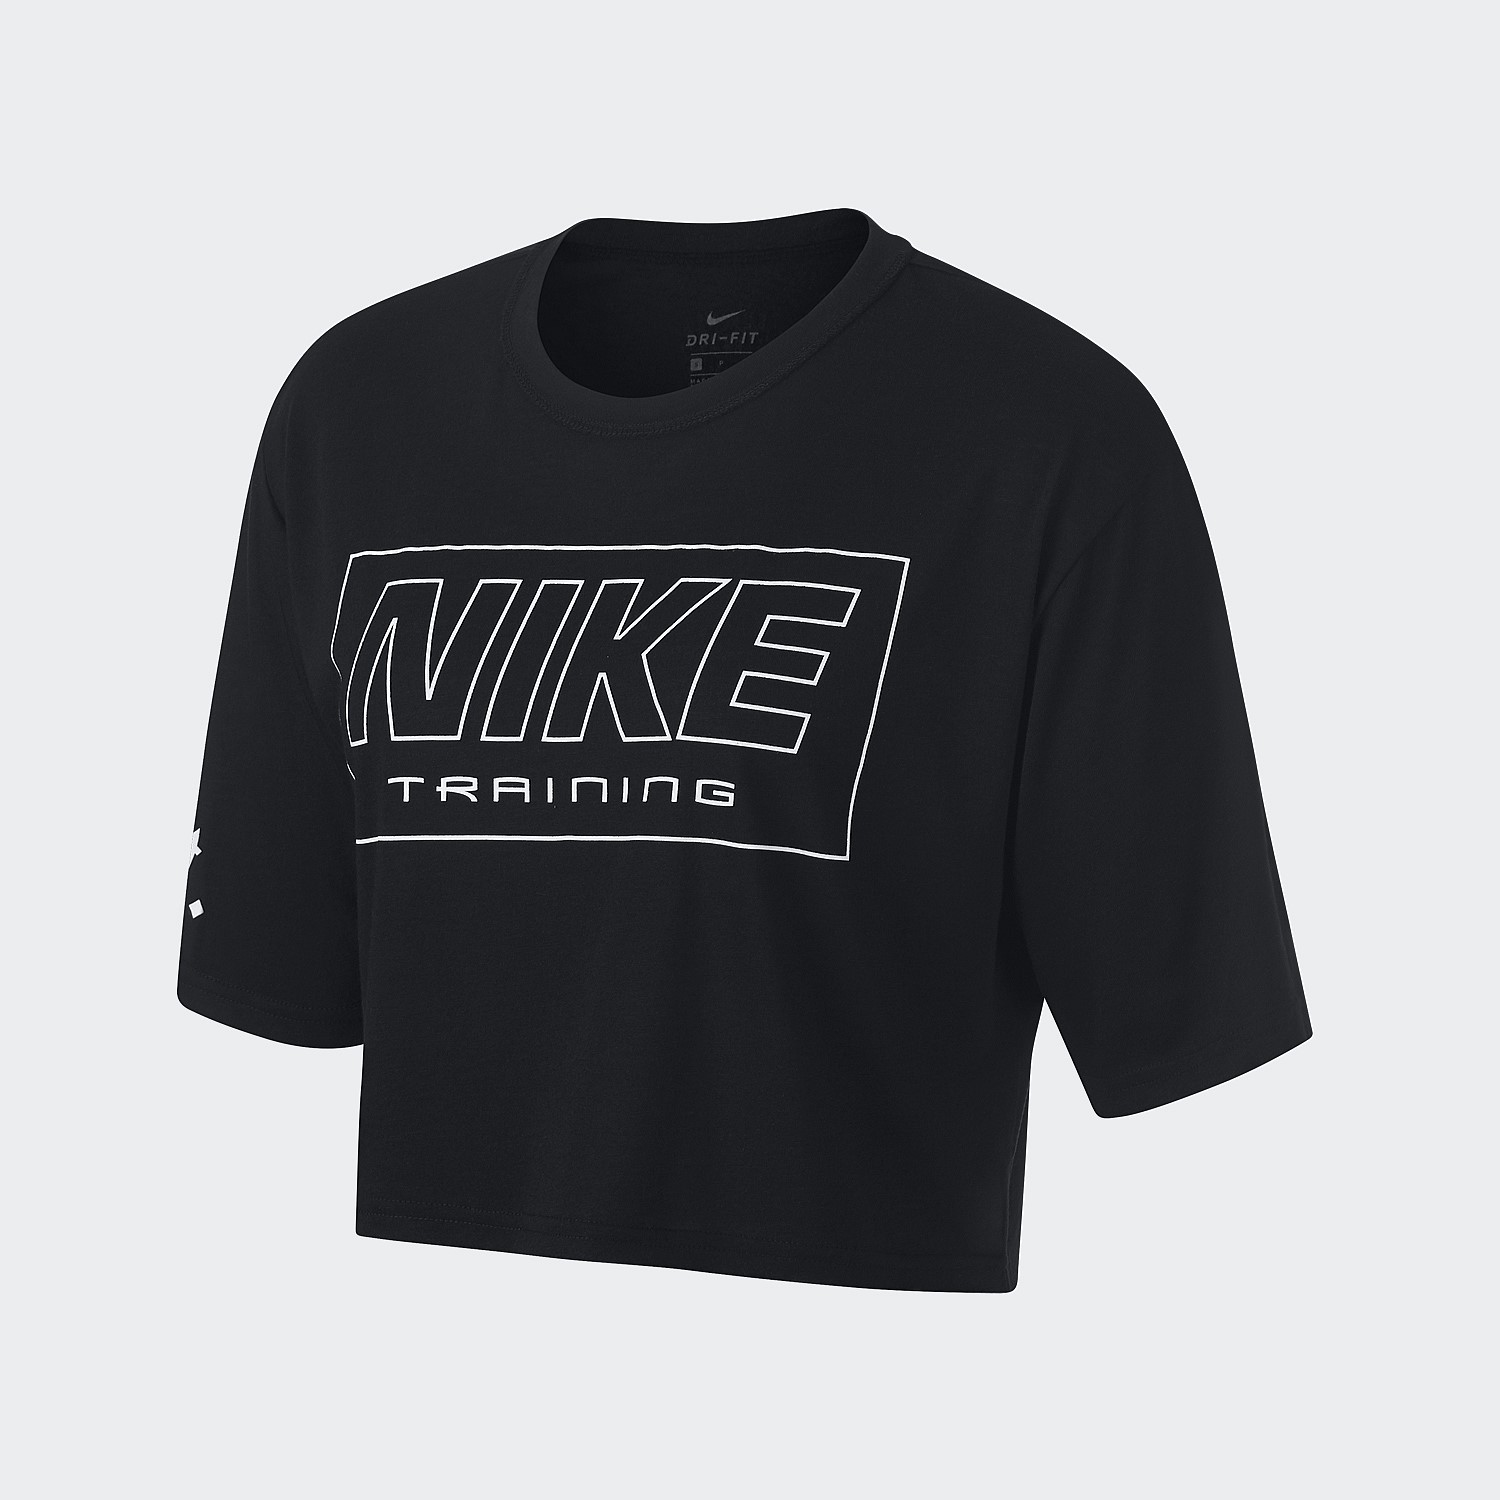 4f1d8e91 Nike | Shop Nike Training and Lifestyle Clothing, Footwear and Accessories  | Stirling Sports - Logo Training Crop Top